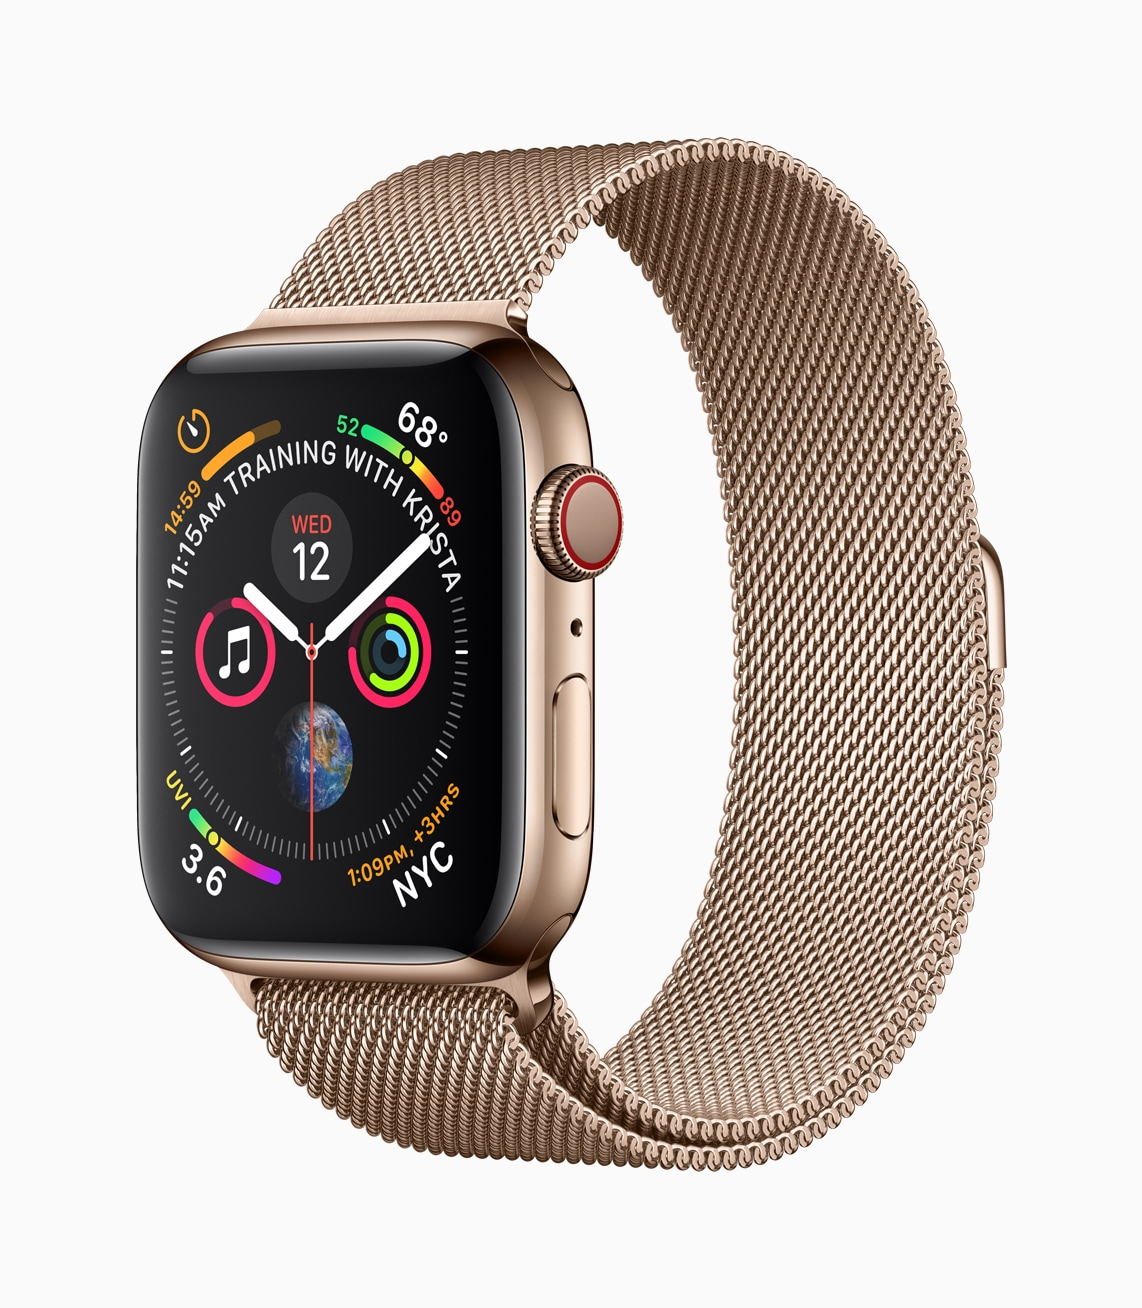 102e4f110 O que muda do Apple Watch Series 3 para o Series 4  – MacMagazine.com.br